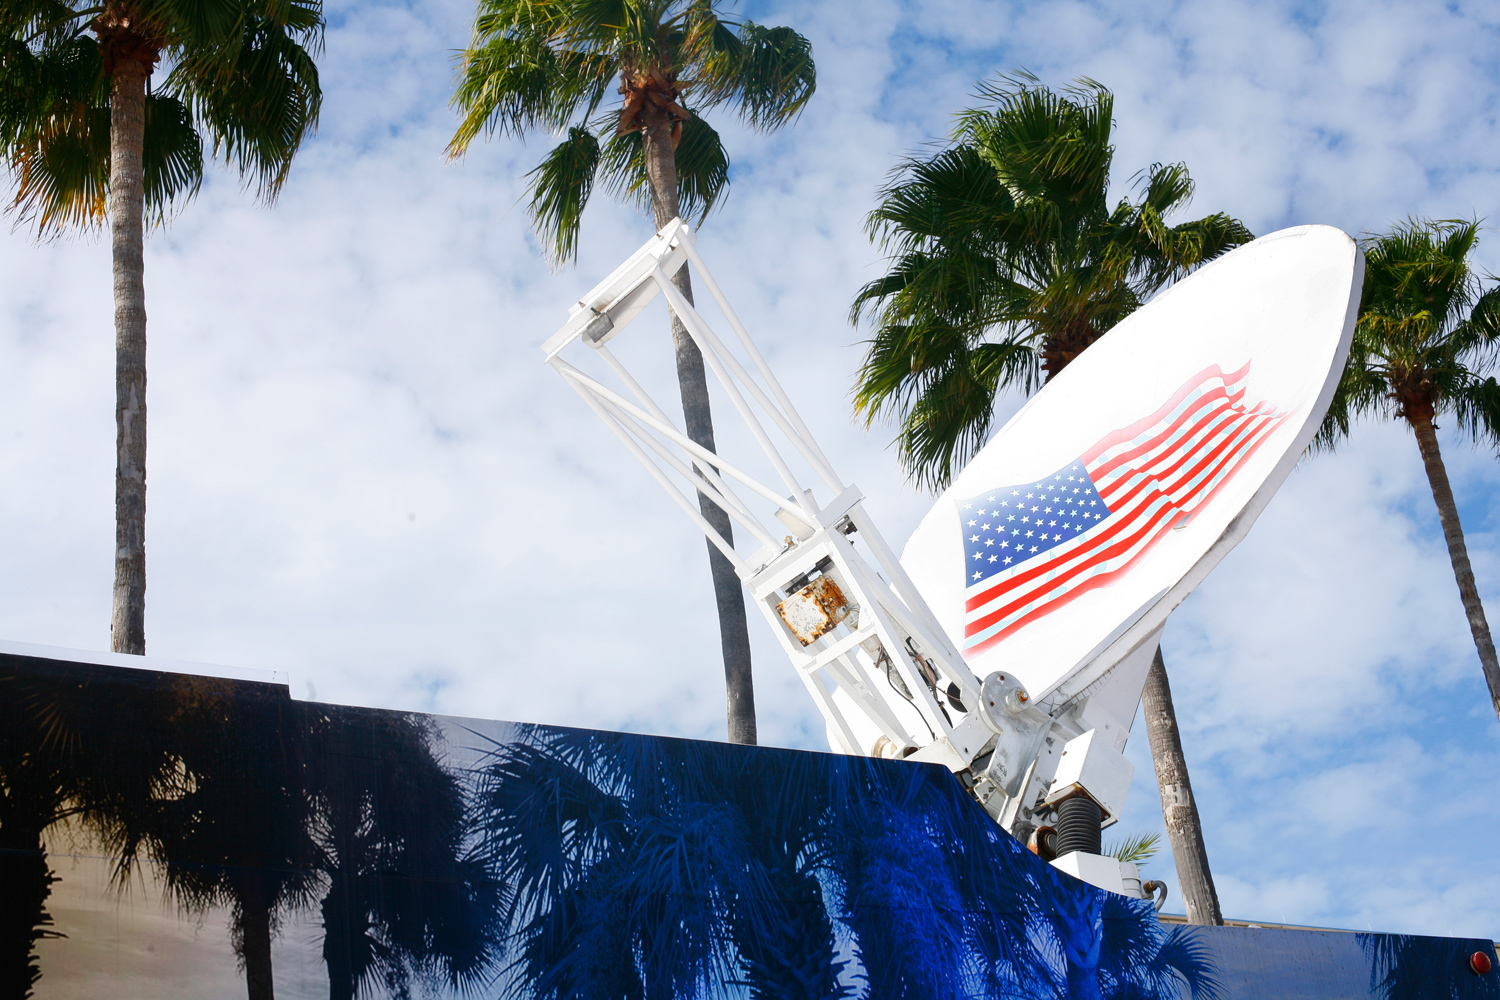 The scene outside the Tampa Convention Center before Romney´s Florida Primary event, January 31, 2012.